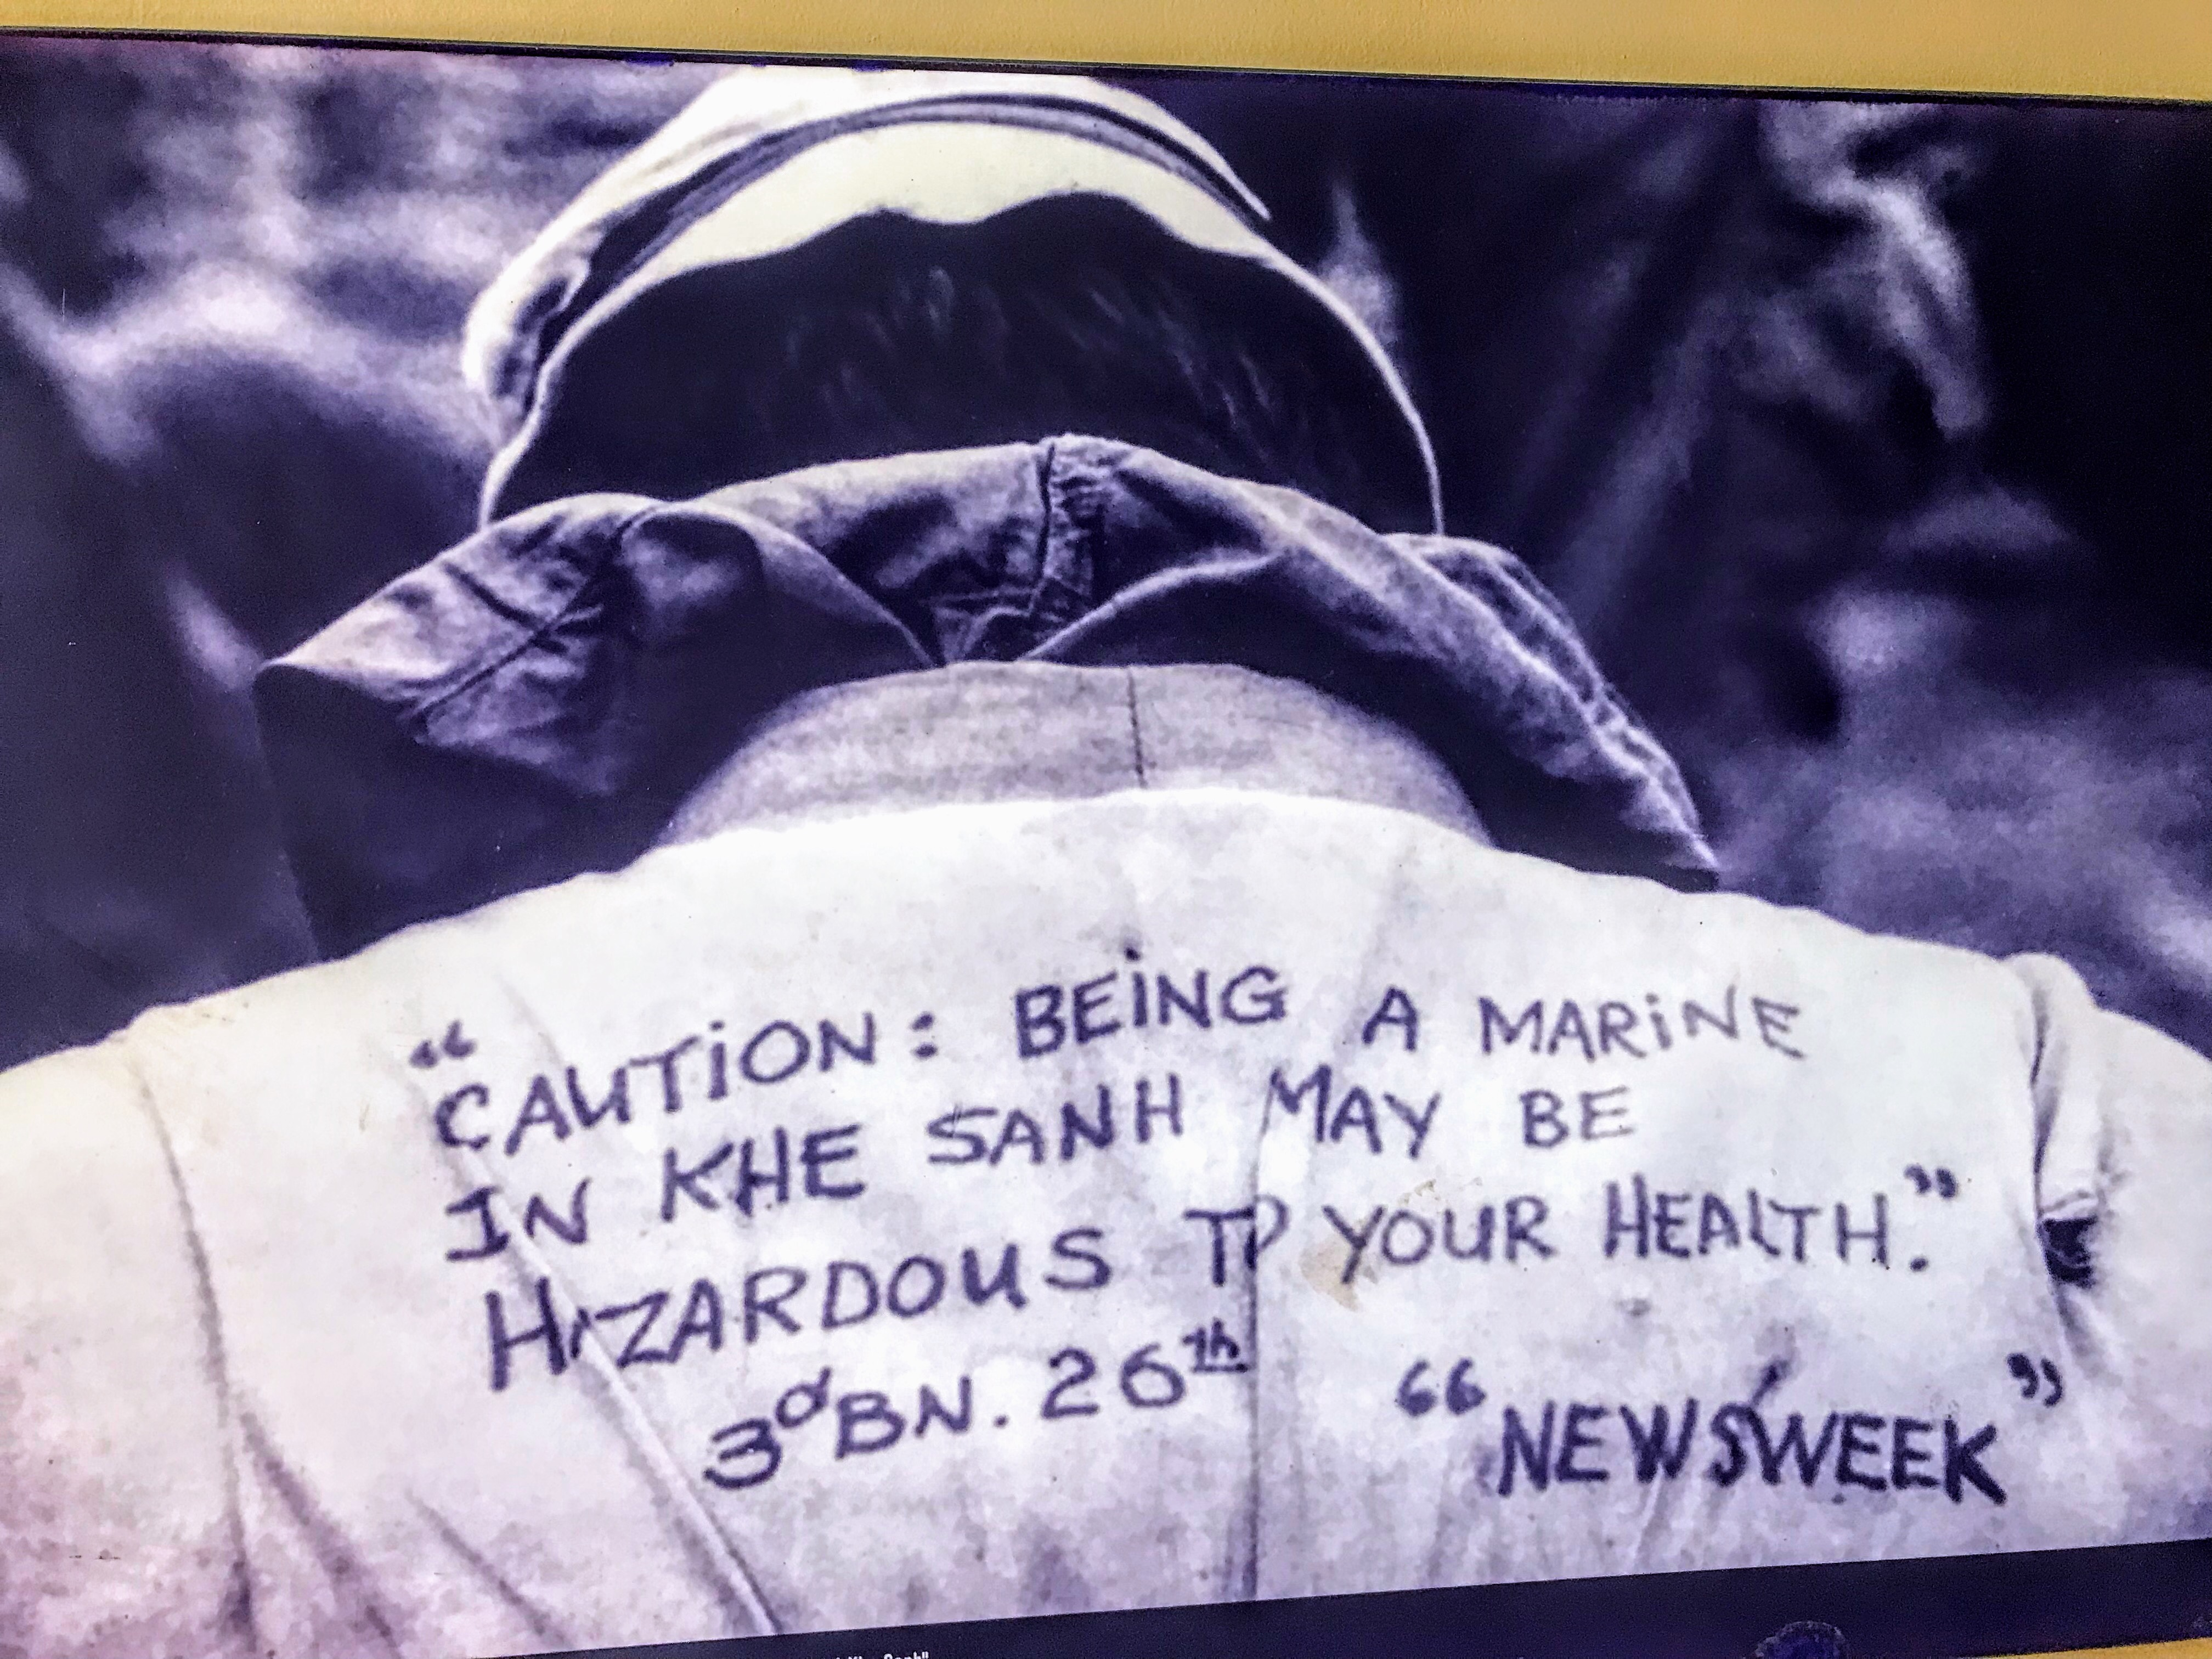 Being a marine in Khe Sanh may be hazardous to your health